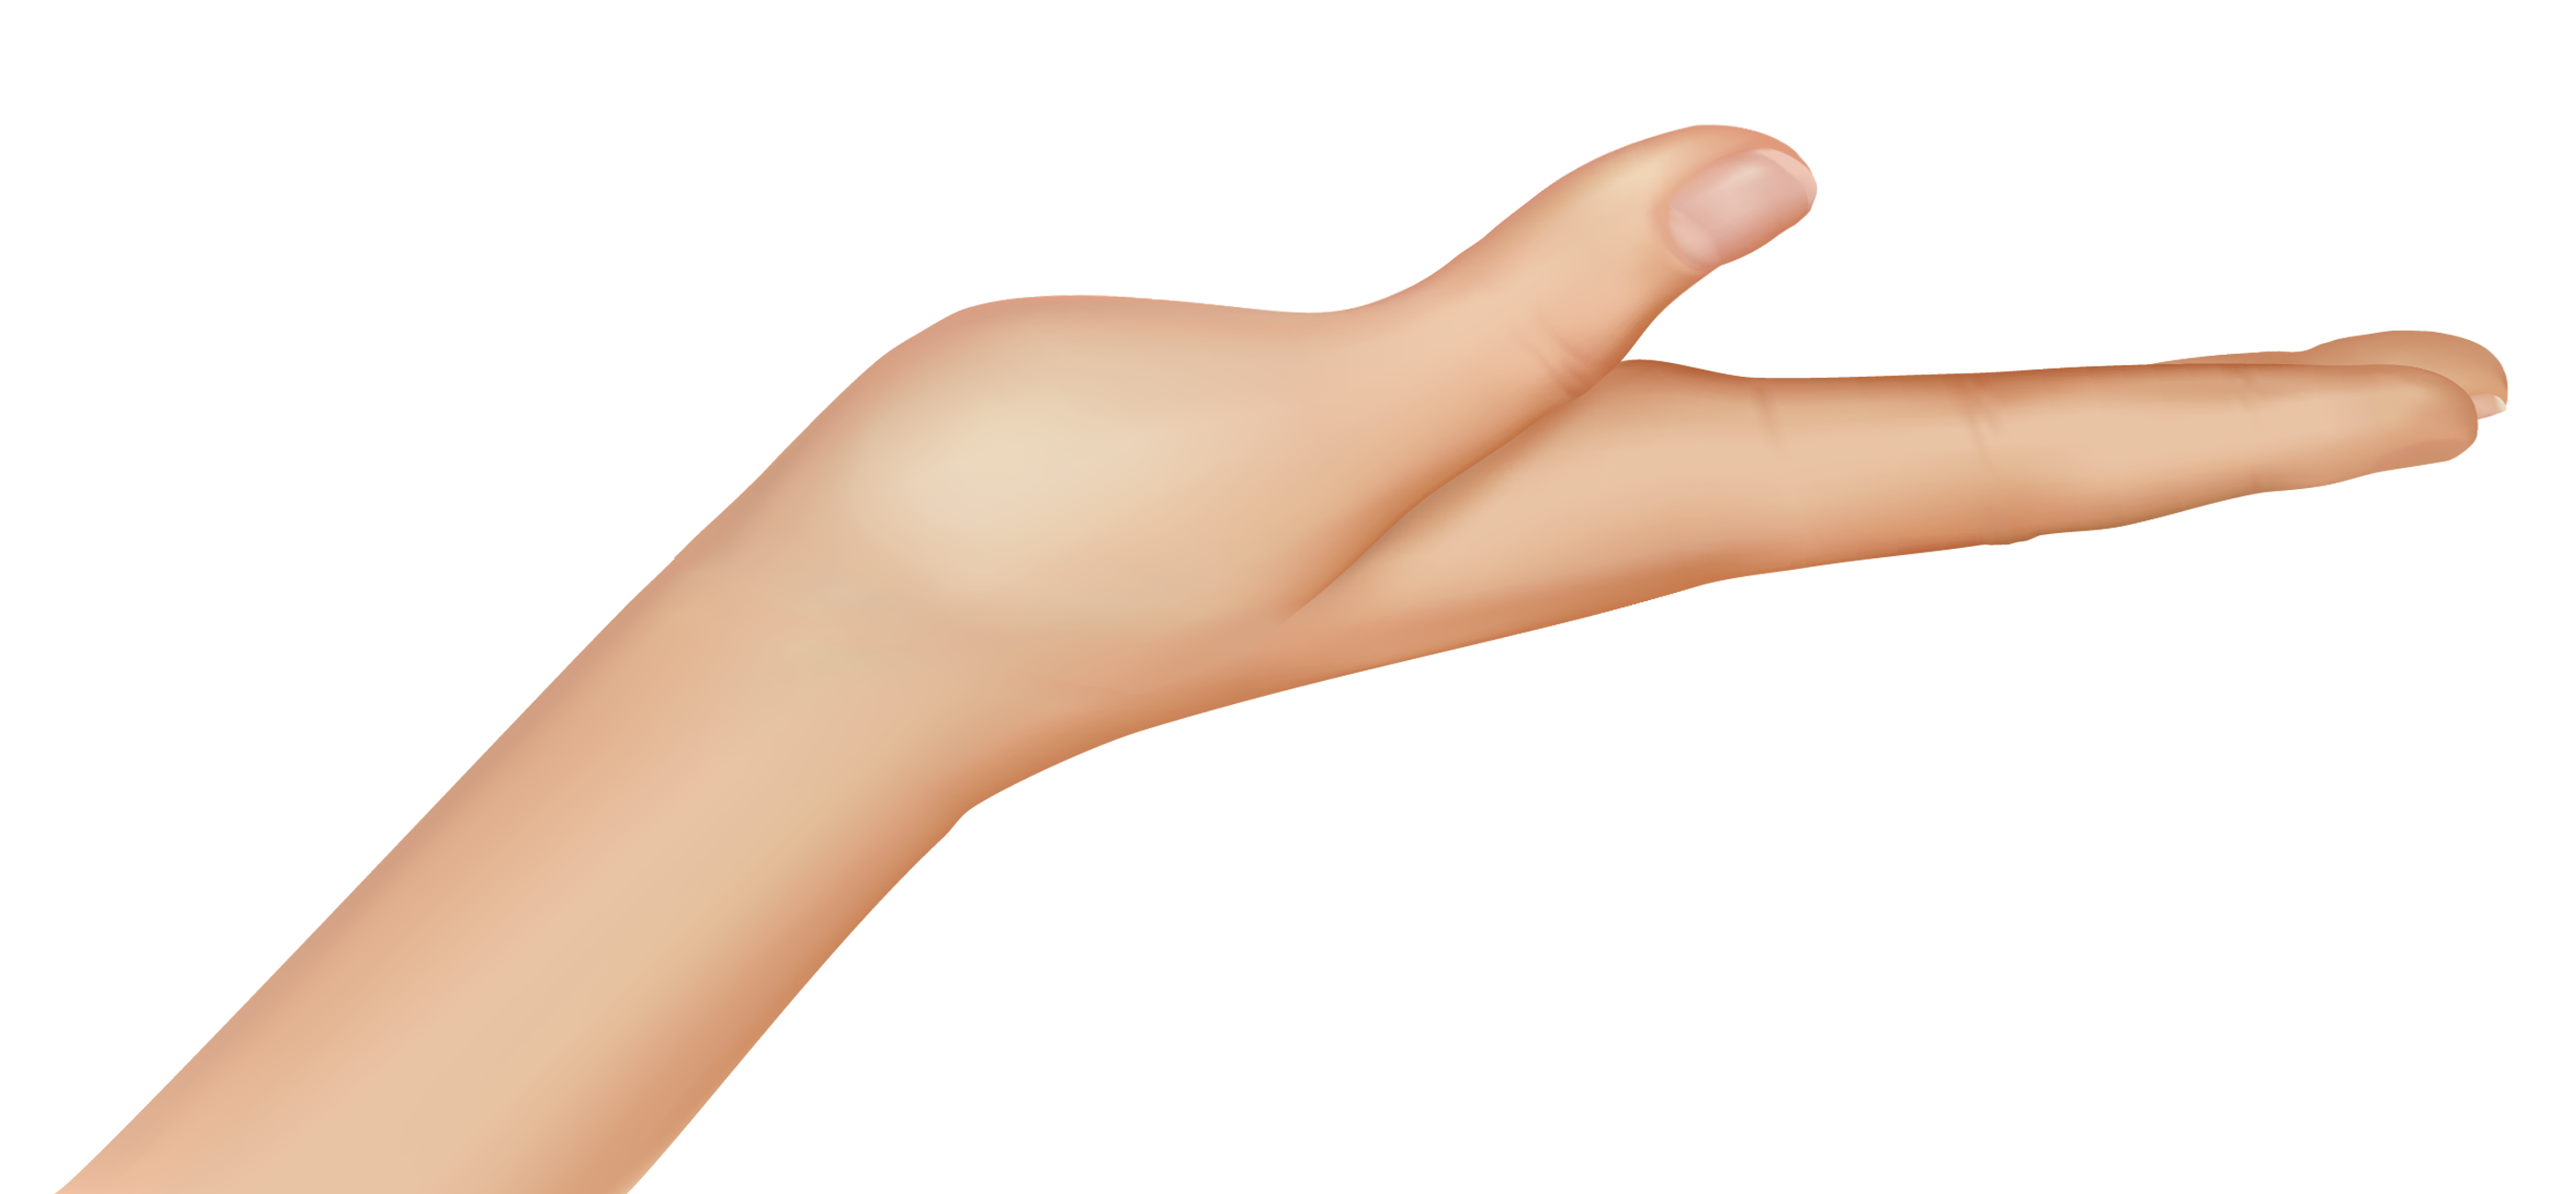 Hand png image gallery. Lady clipart hands